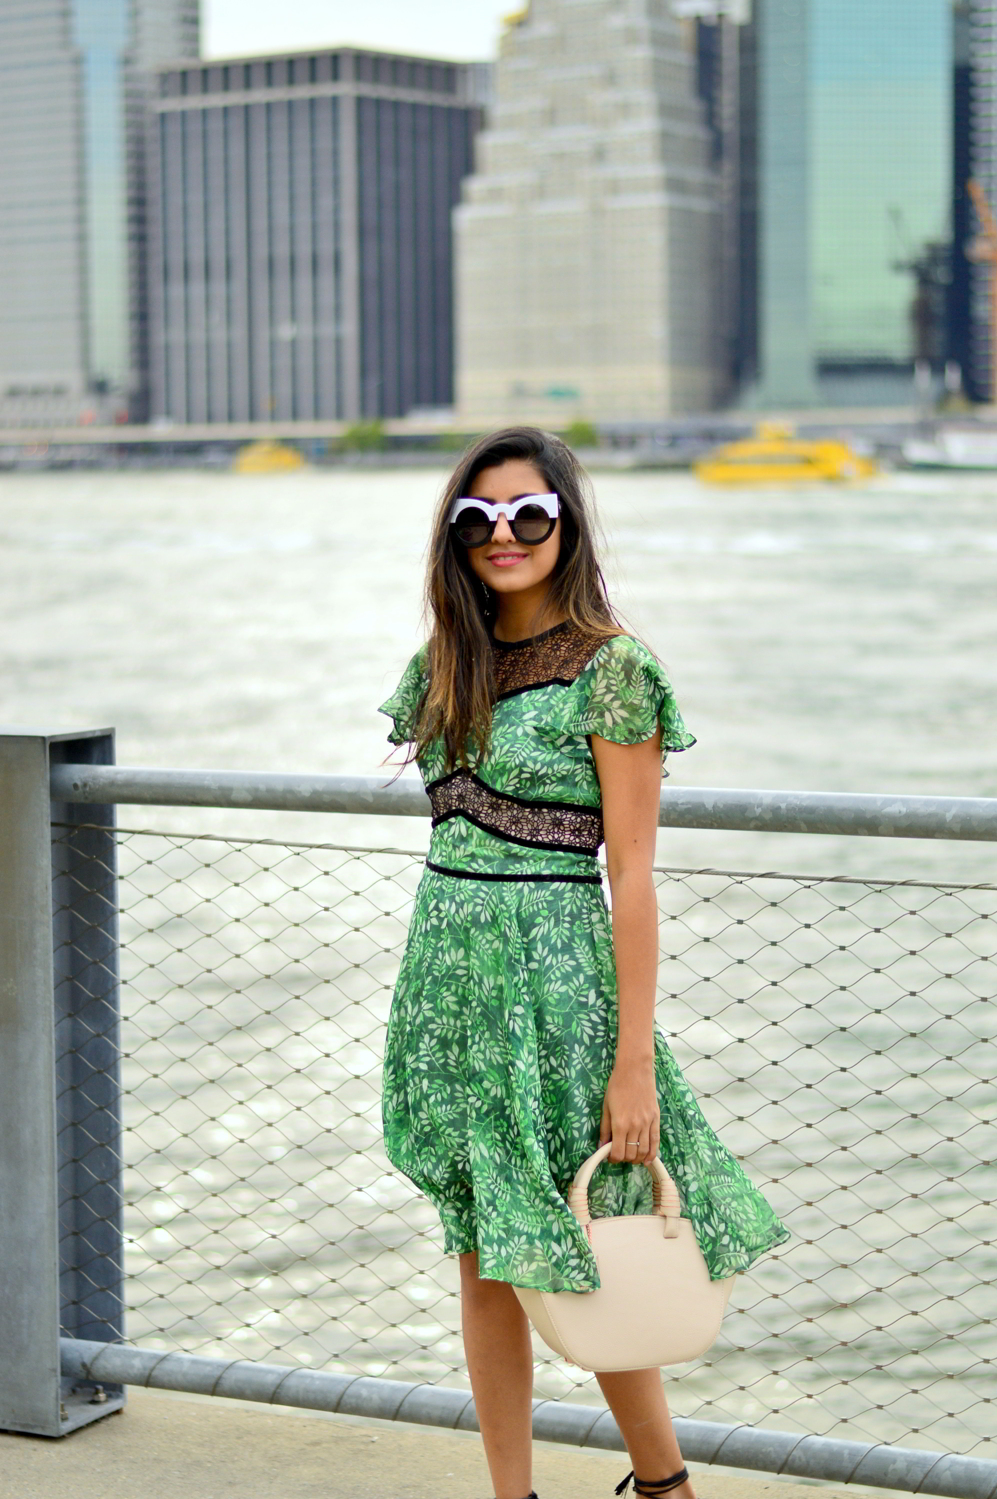 green-leaf-print-summer-sundress-brooklyn-bridge-nyc-blogger-outfit 5